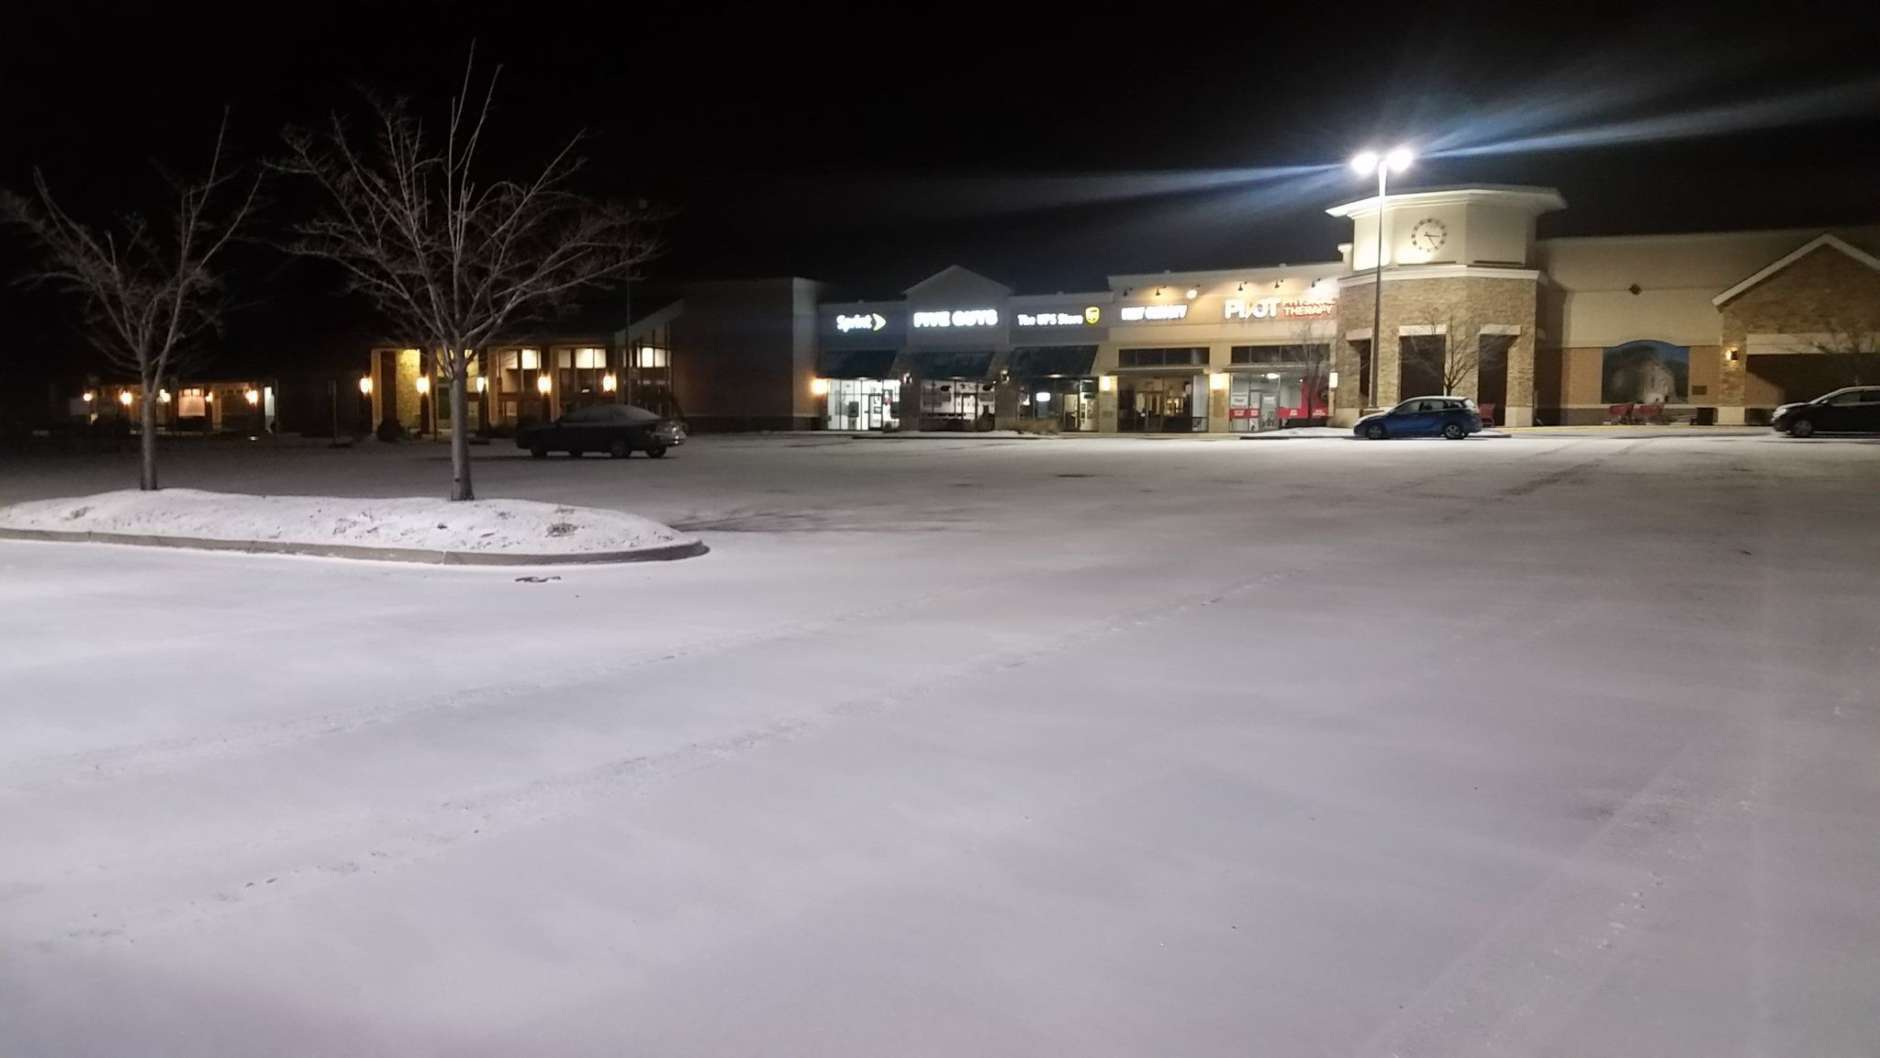 Shopping center off of Route 234 in Woodbridge. This area is only seeing a dusting so far but the wind is already picking up. (WTOP/Kathy Stewart)